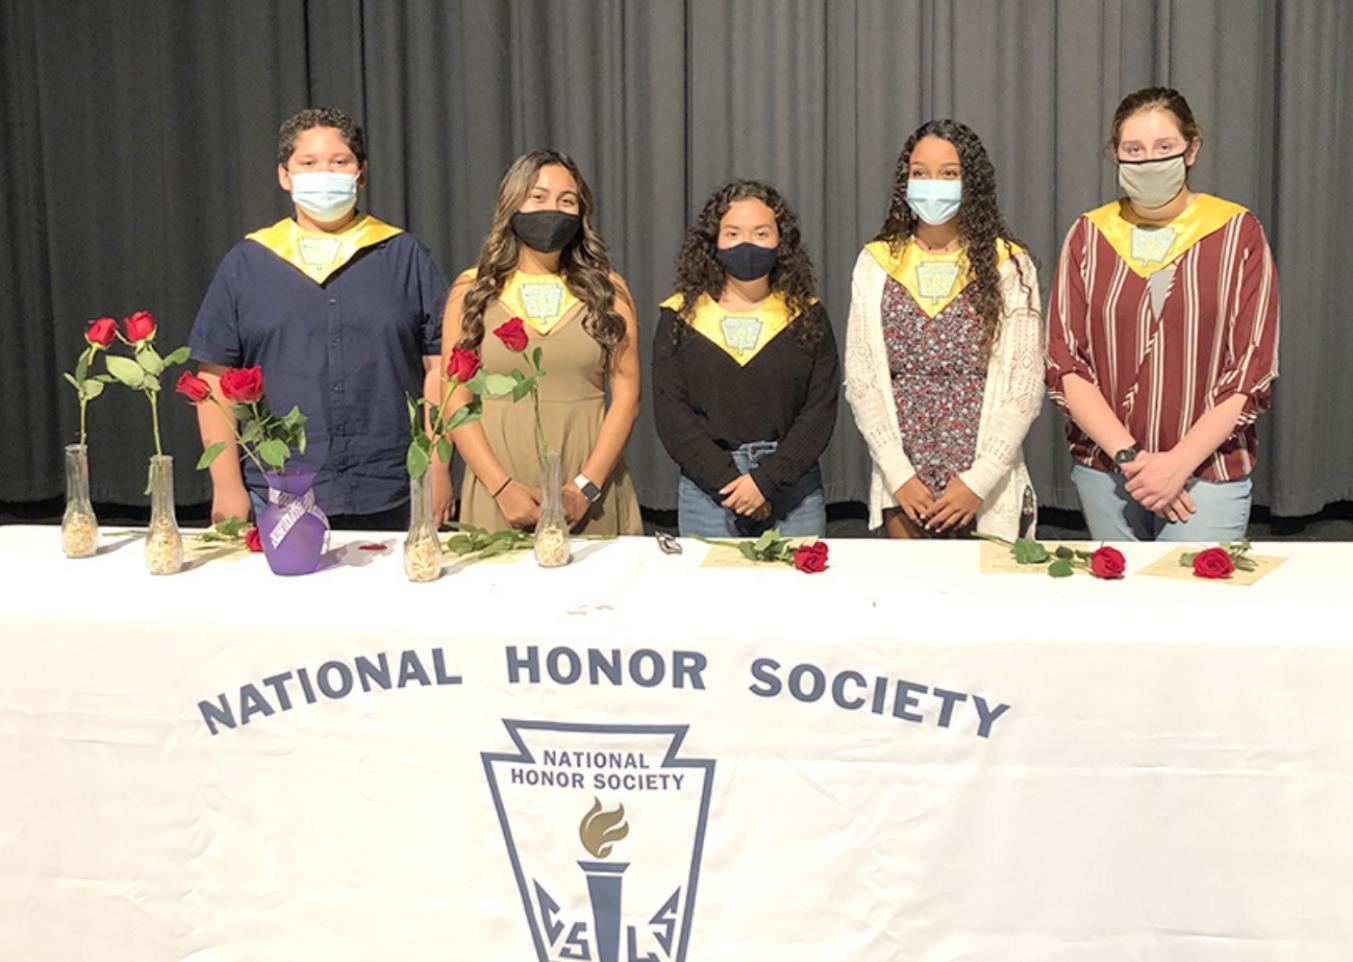 New members of the Gibbon National Honor Society who were recently inducted are, left to right, Hernan Vargus, Gelsy Rivas, Raquel Martinez, Hadleigh Davis and Ryley Ingram. Not pictured is Jiromi Corona. (–courtesy photo)